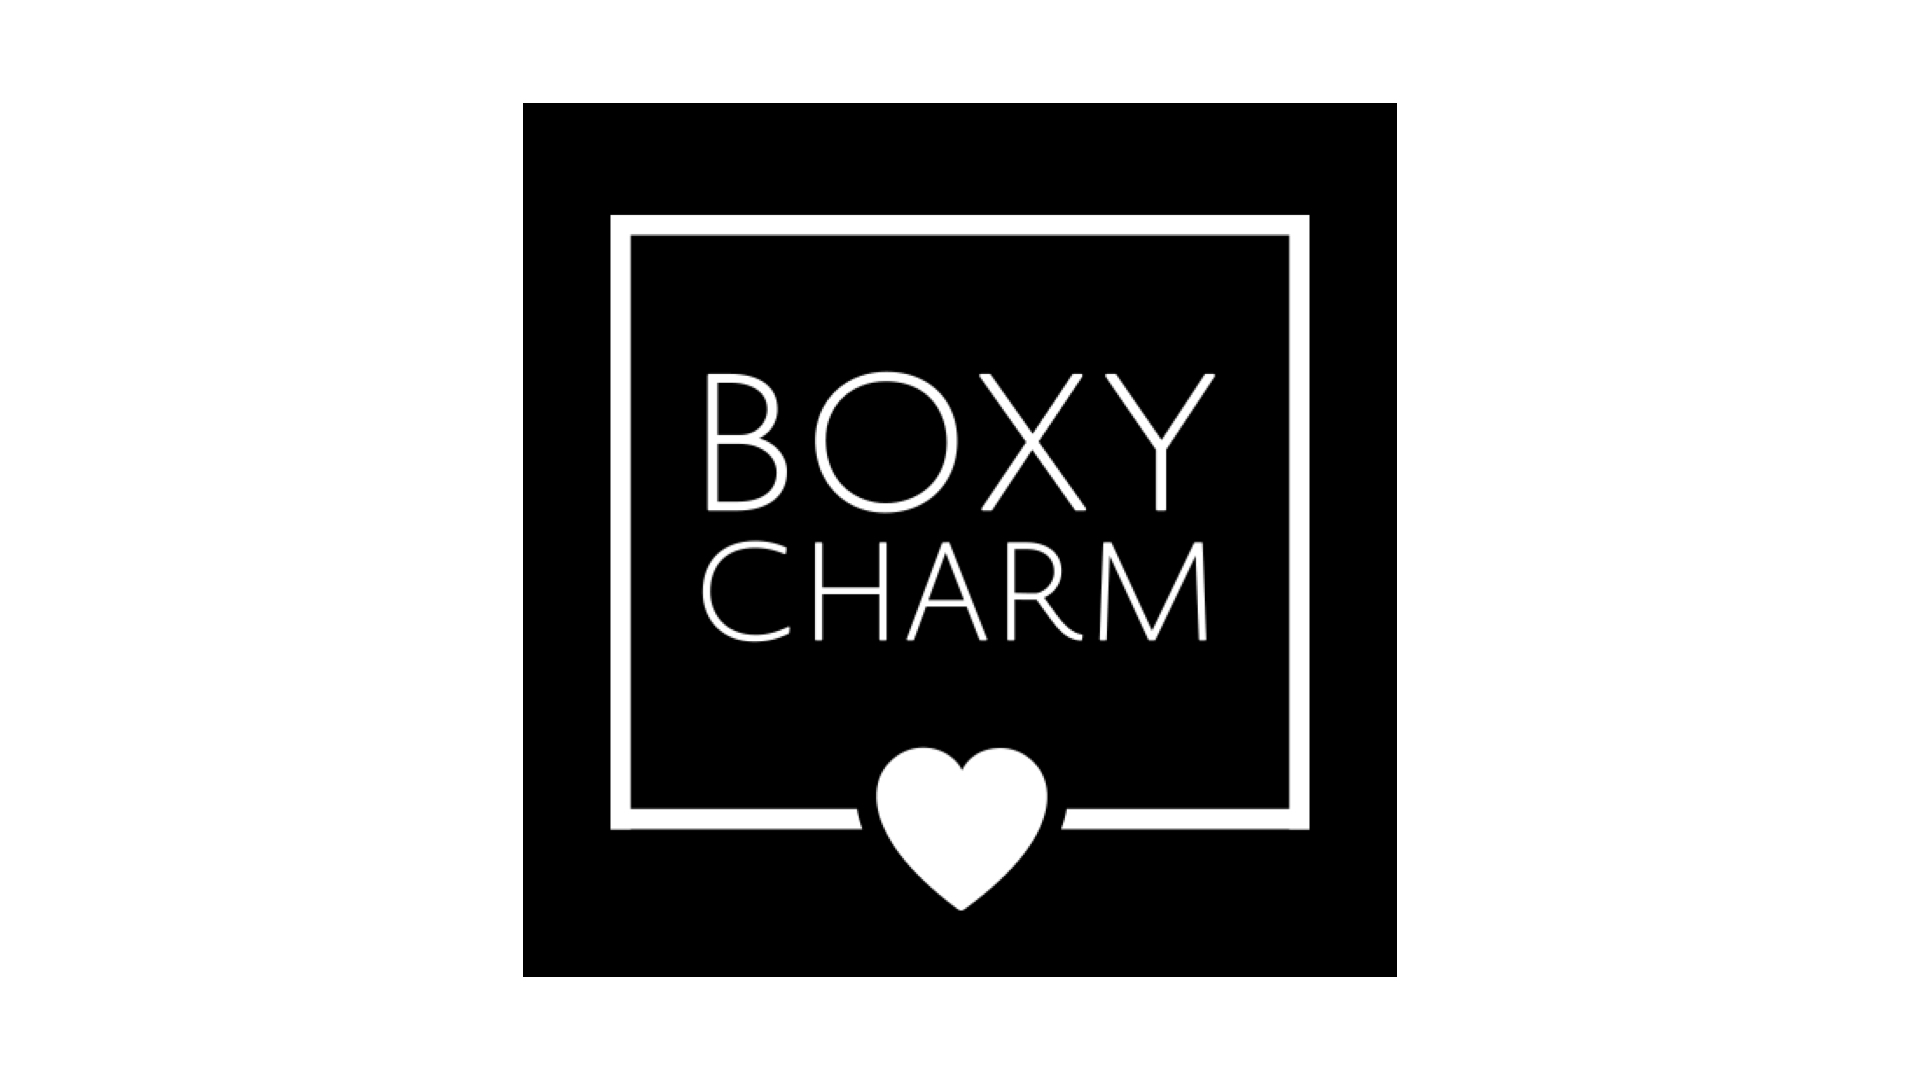 https://www.boxycharm.com/